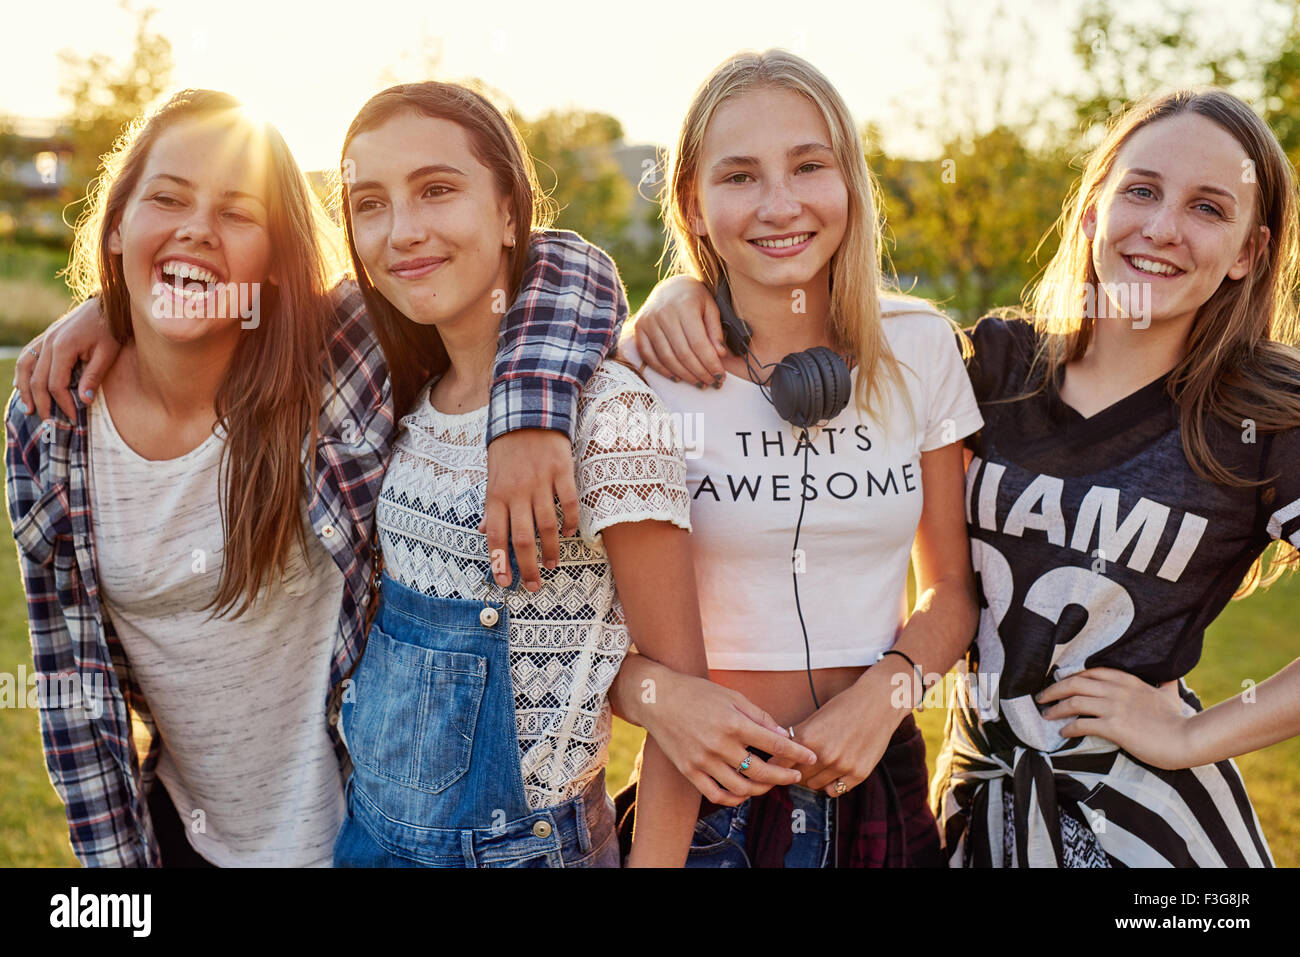 Groupe d'adolescentes sortir un soir d'été Photo Stock